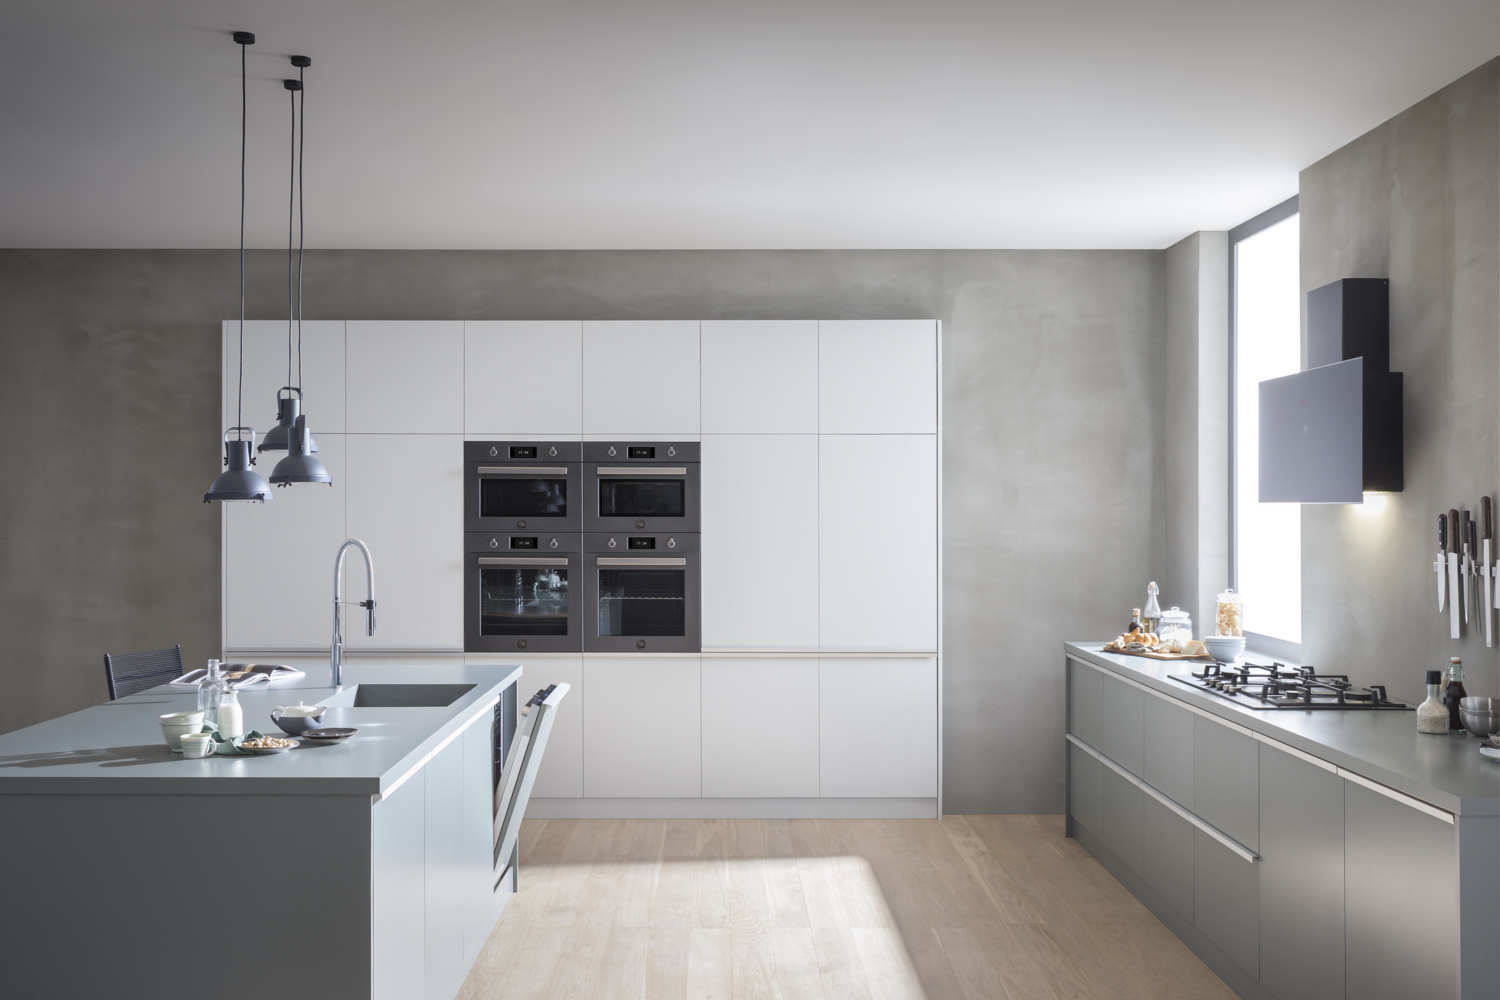 The Latest Future Kitchen Design Trends According To